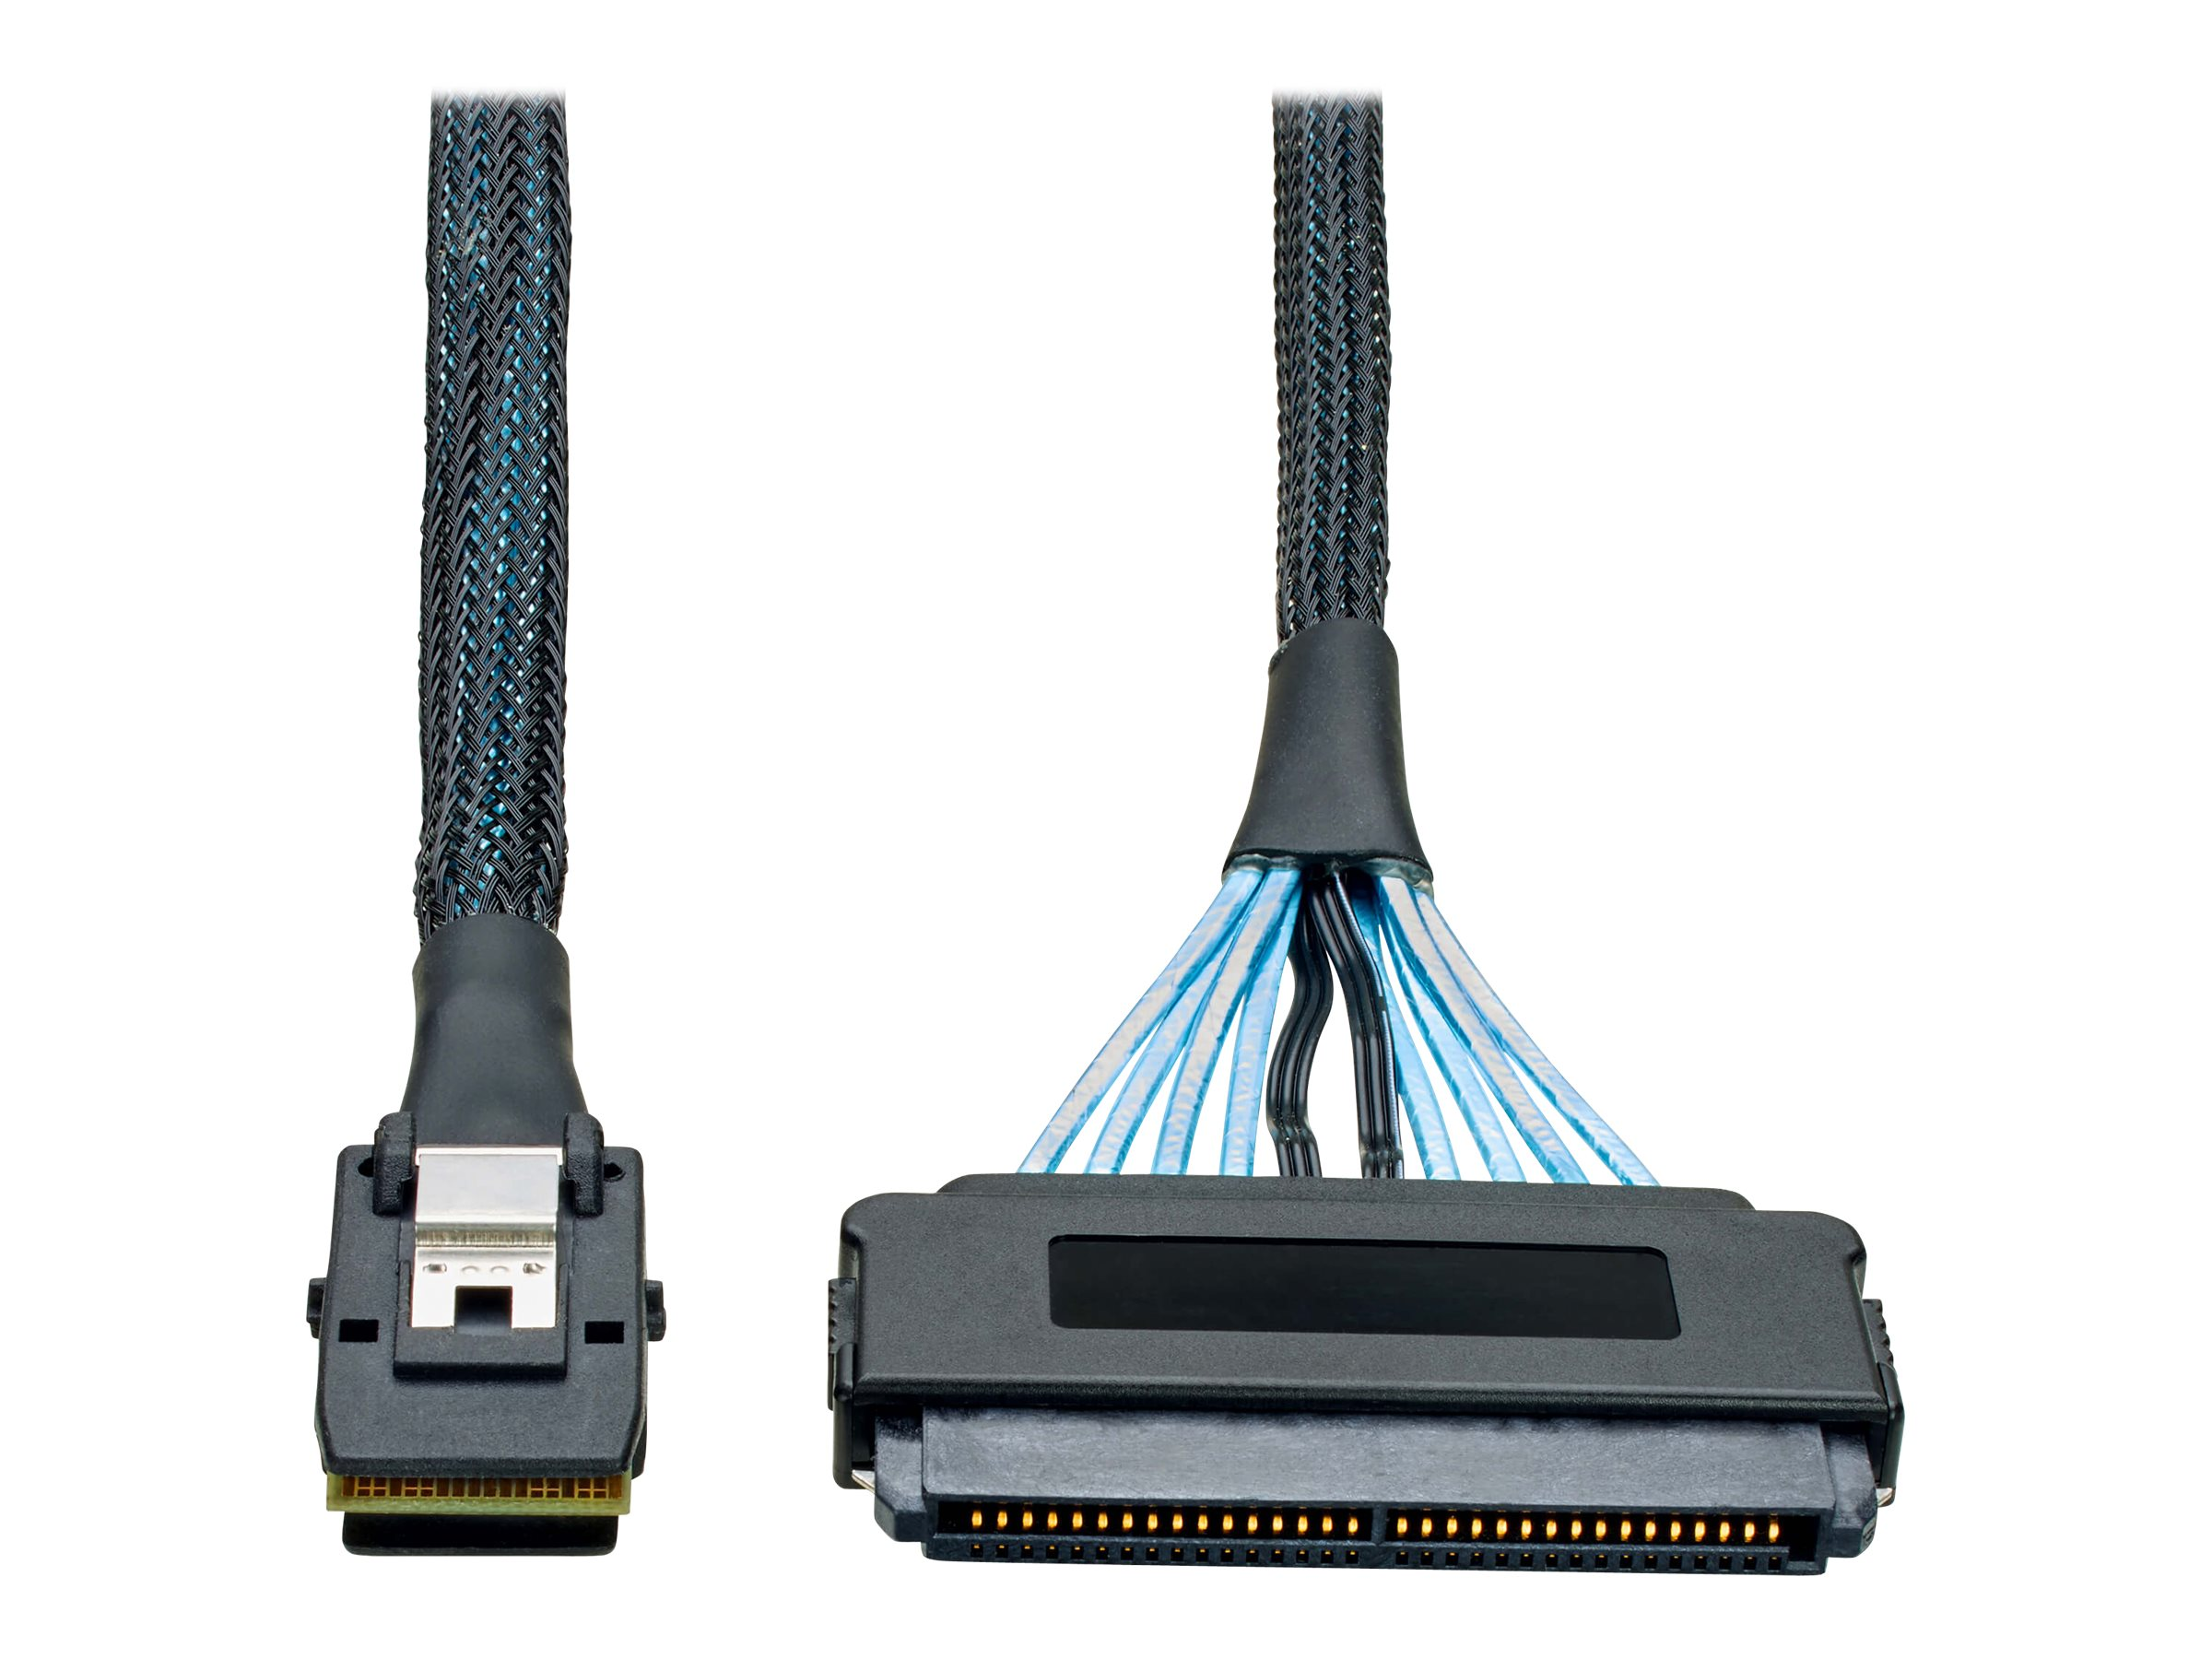 Tripp Lite 3ft Internal SAS Cable mini-SAS SFF-8087 to 32pin SFF-8484 4-in-1 3' - SAS internal cable - 91 cm